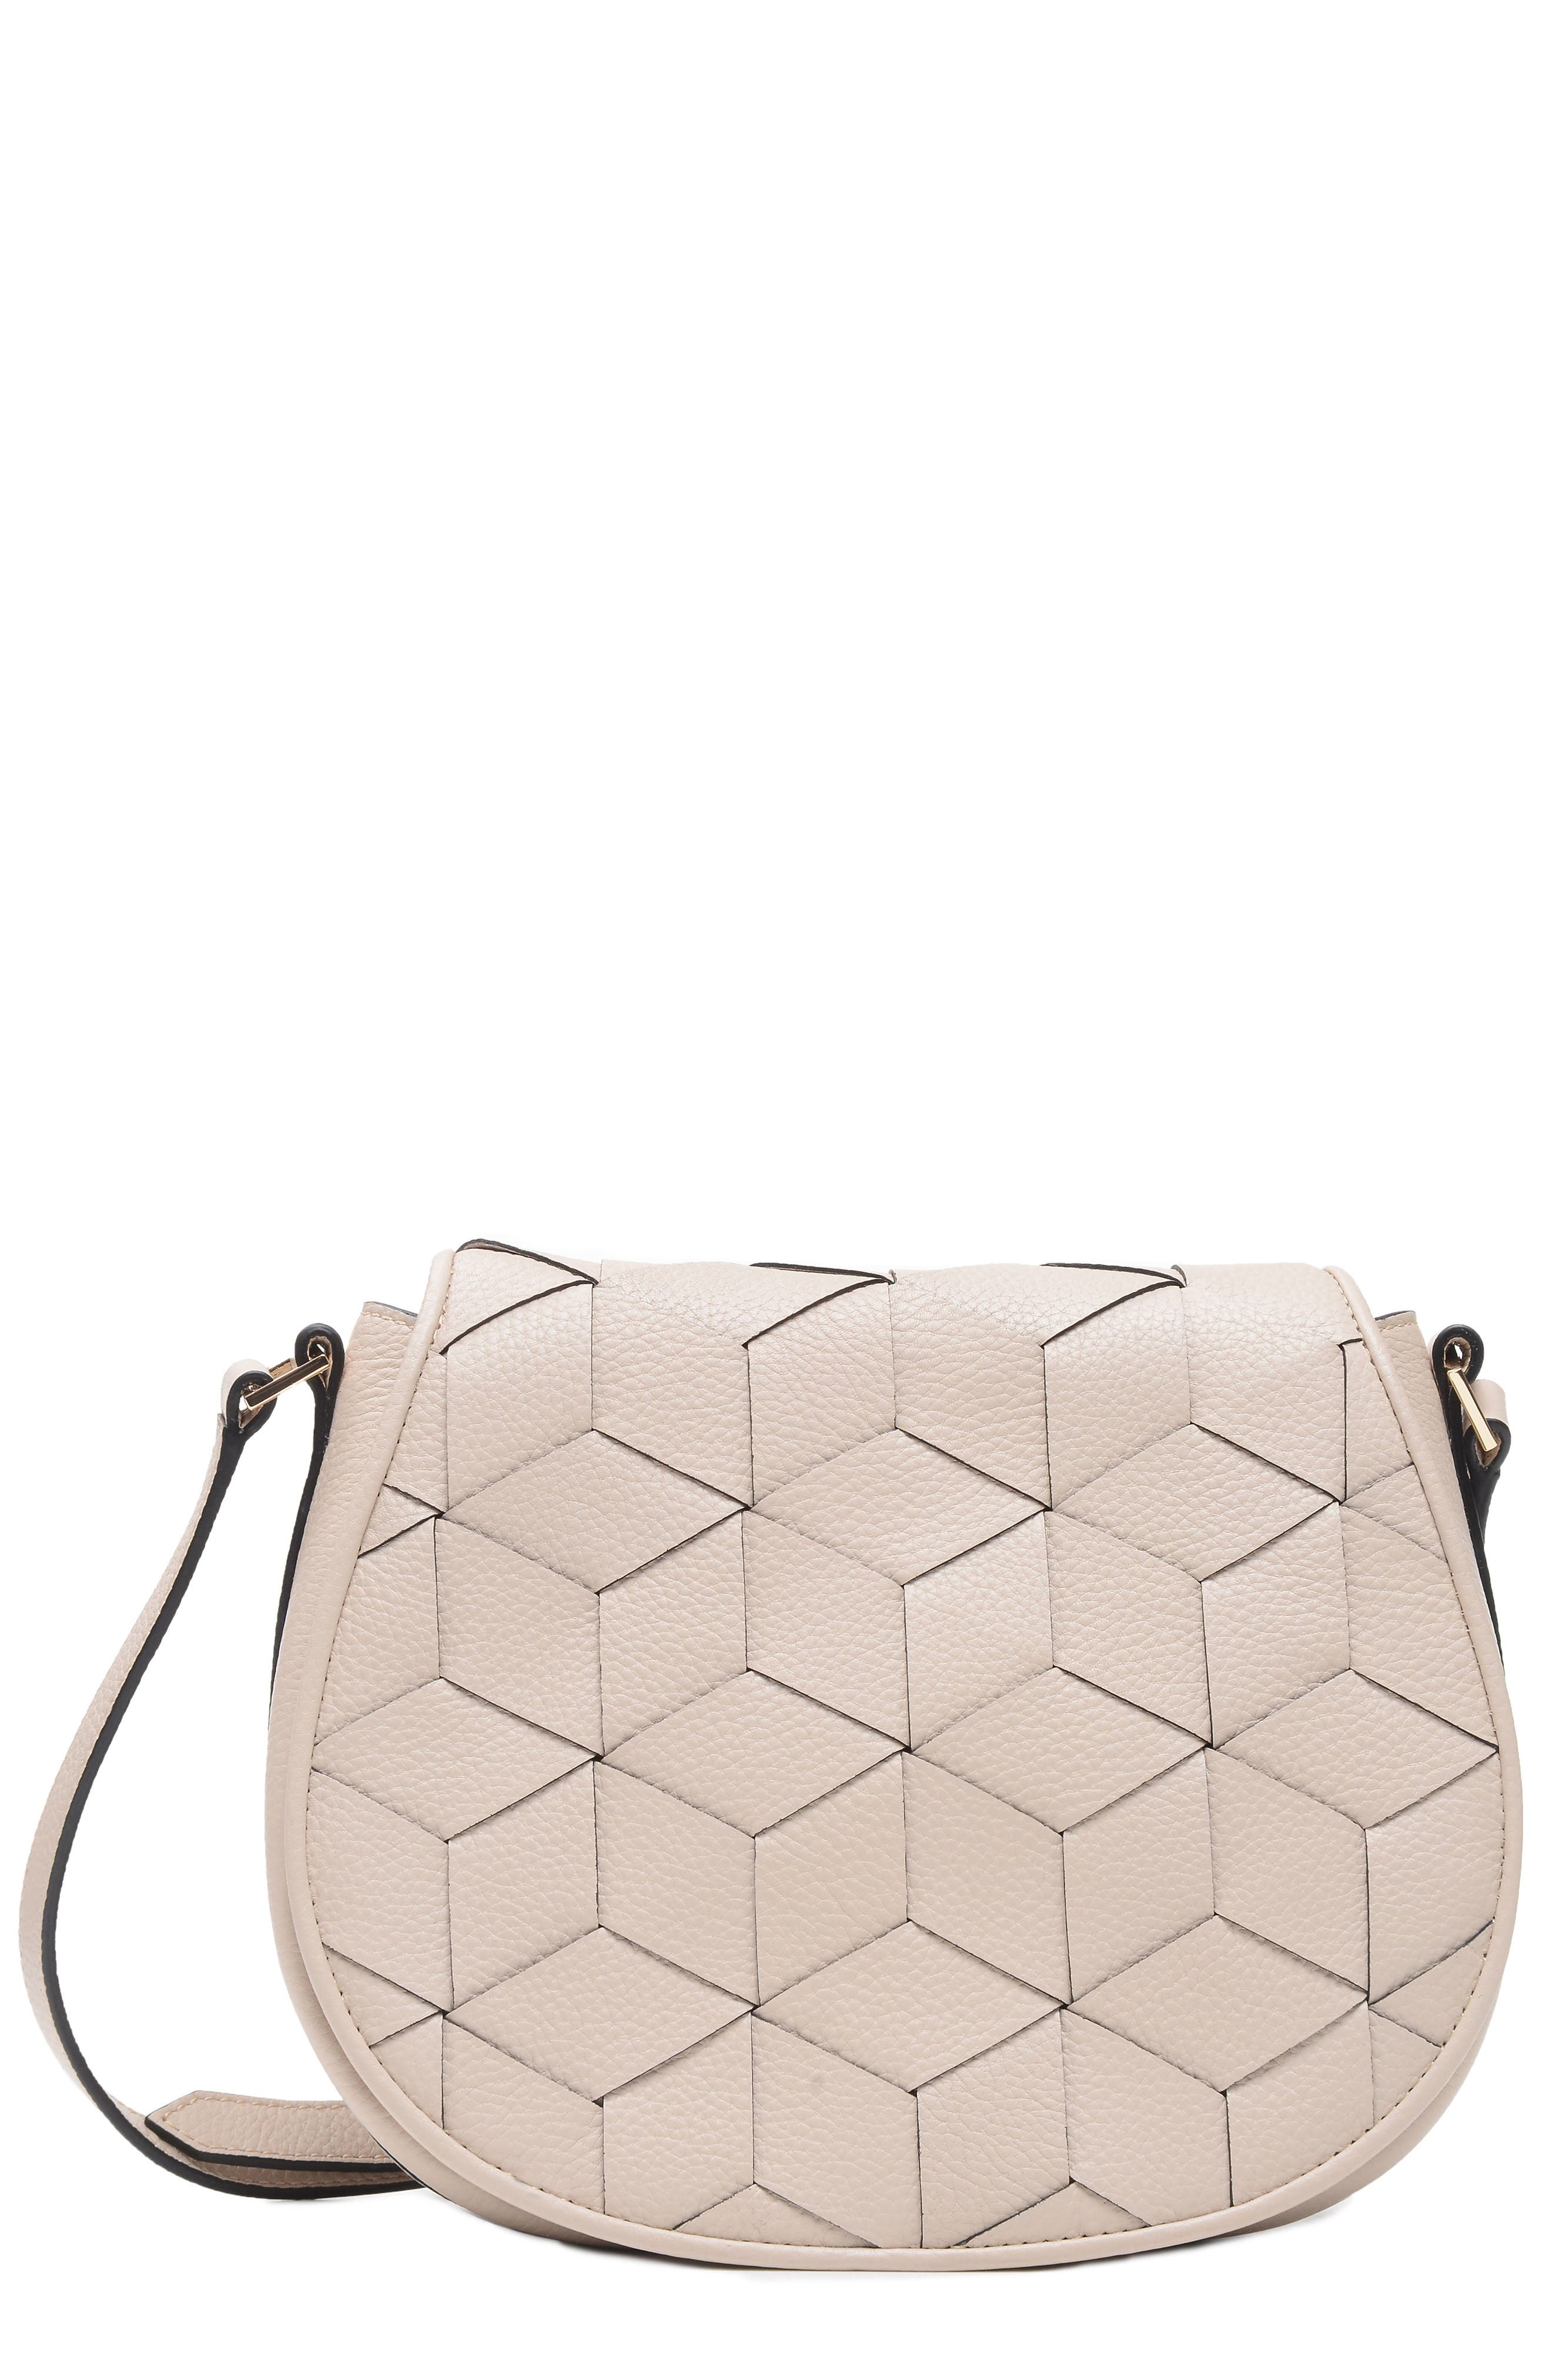 WELDEN ESCAPADE PEBBLED LEATHER SADDLE BAG - IVORY